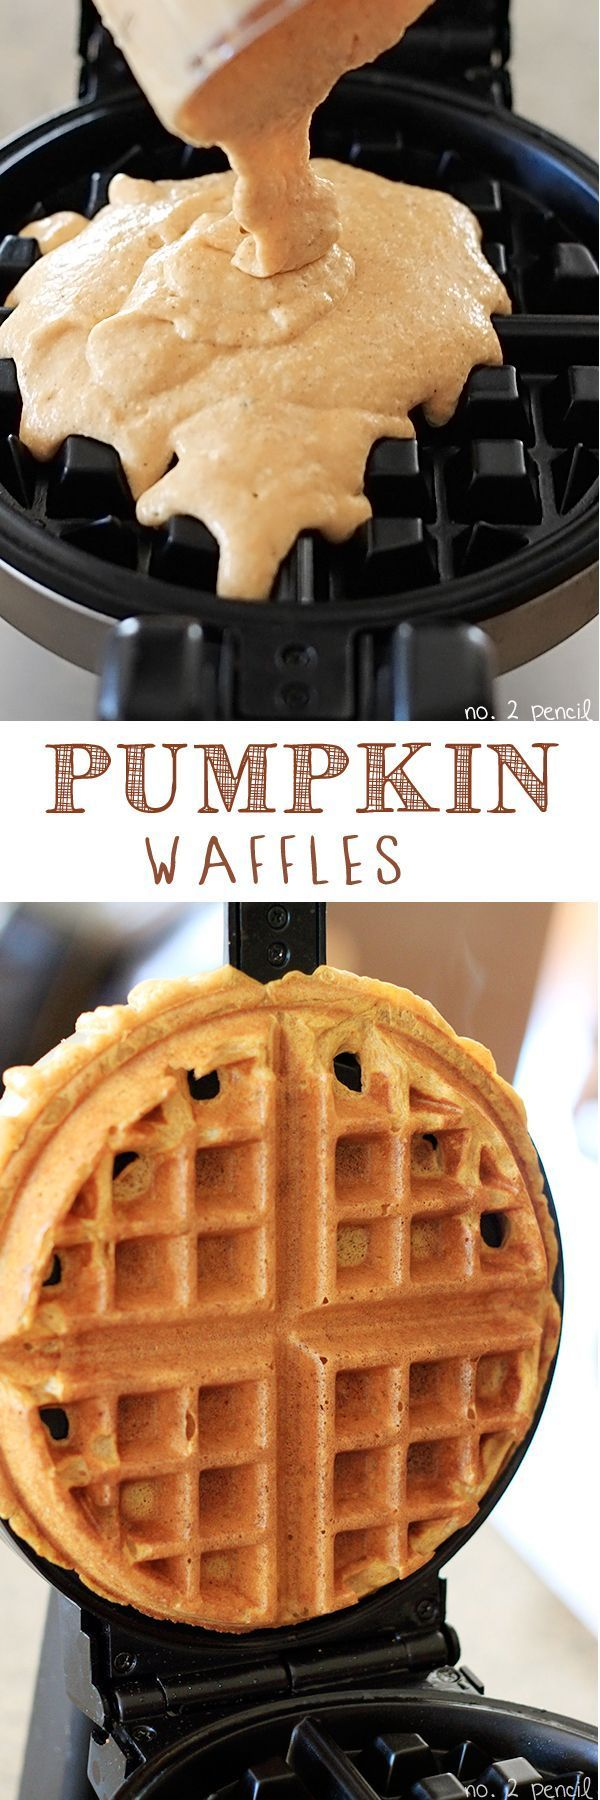 Pumpkin Waffles - crispy on the outside and tender and fluffy on the inside!~T~ YUM